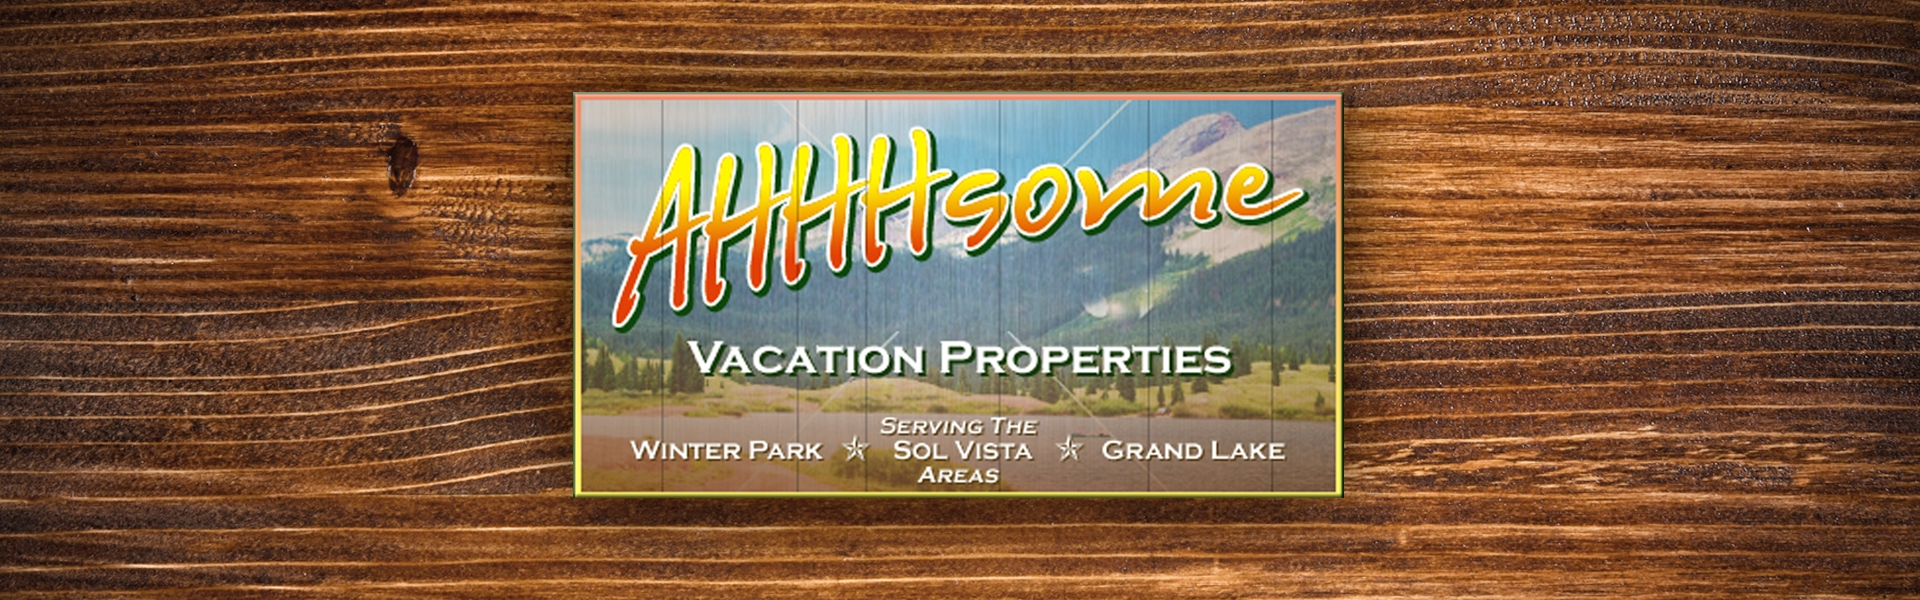 AHHHsome Vacation Properties